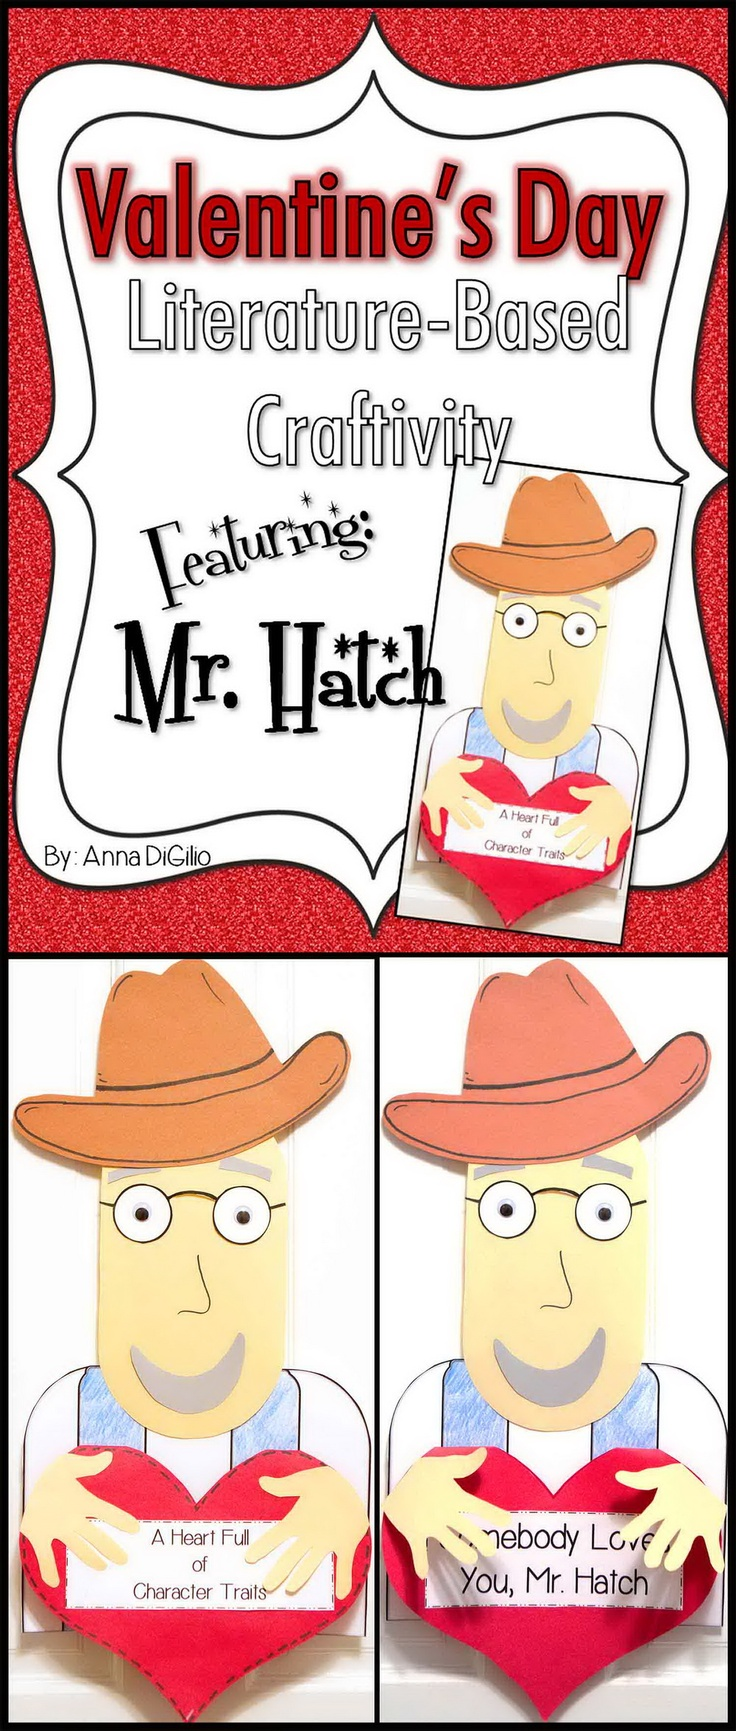 Get ready to FALL IN LOVE with the story Somebody Loves You, Mr. Hatch by Eileen Spinelli!  This unit has an adorable Craftivity of Mr. Hatch along with summarizing skills, character traits, and sequencing events in a story.  Adorable, hands-on, and FUN!